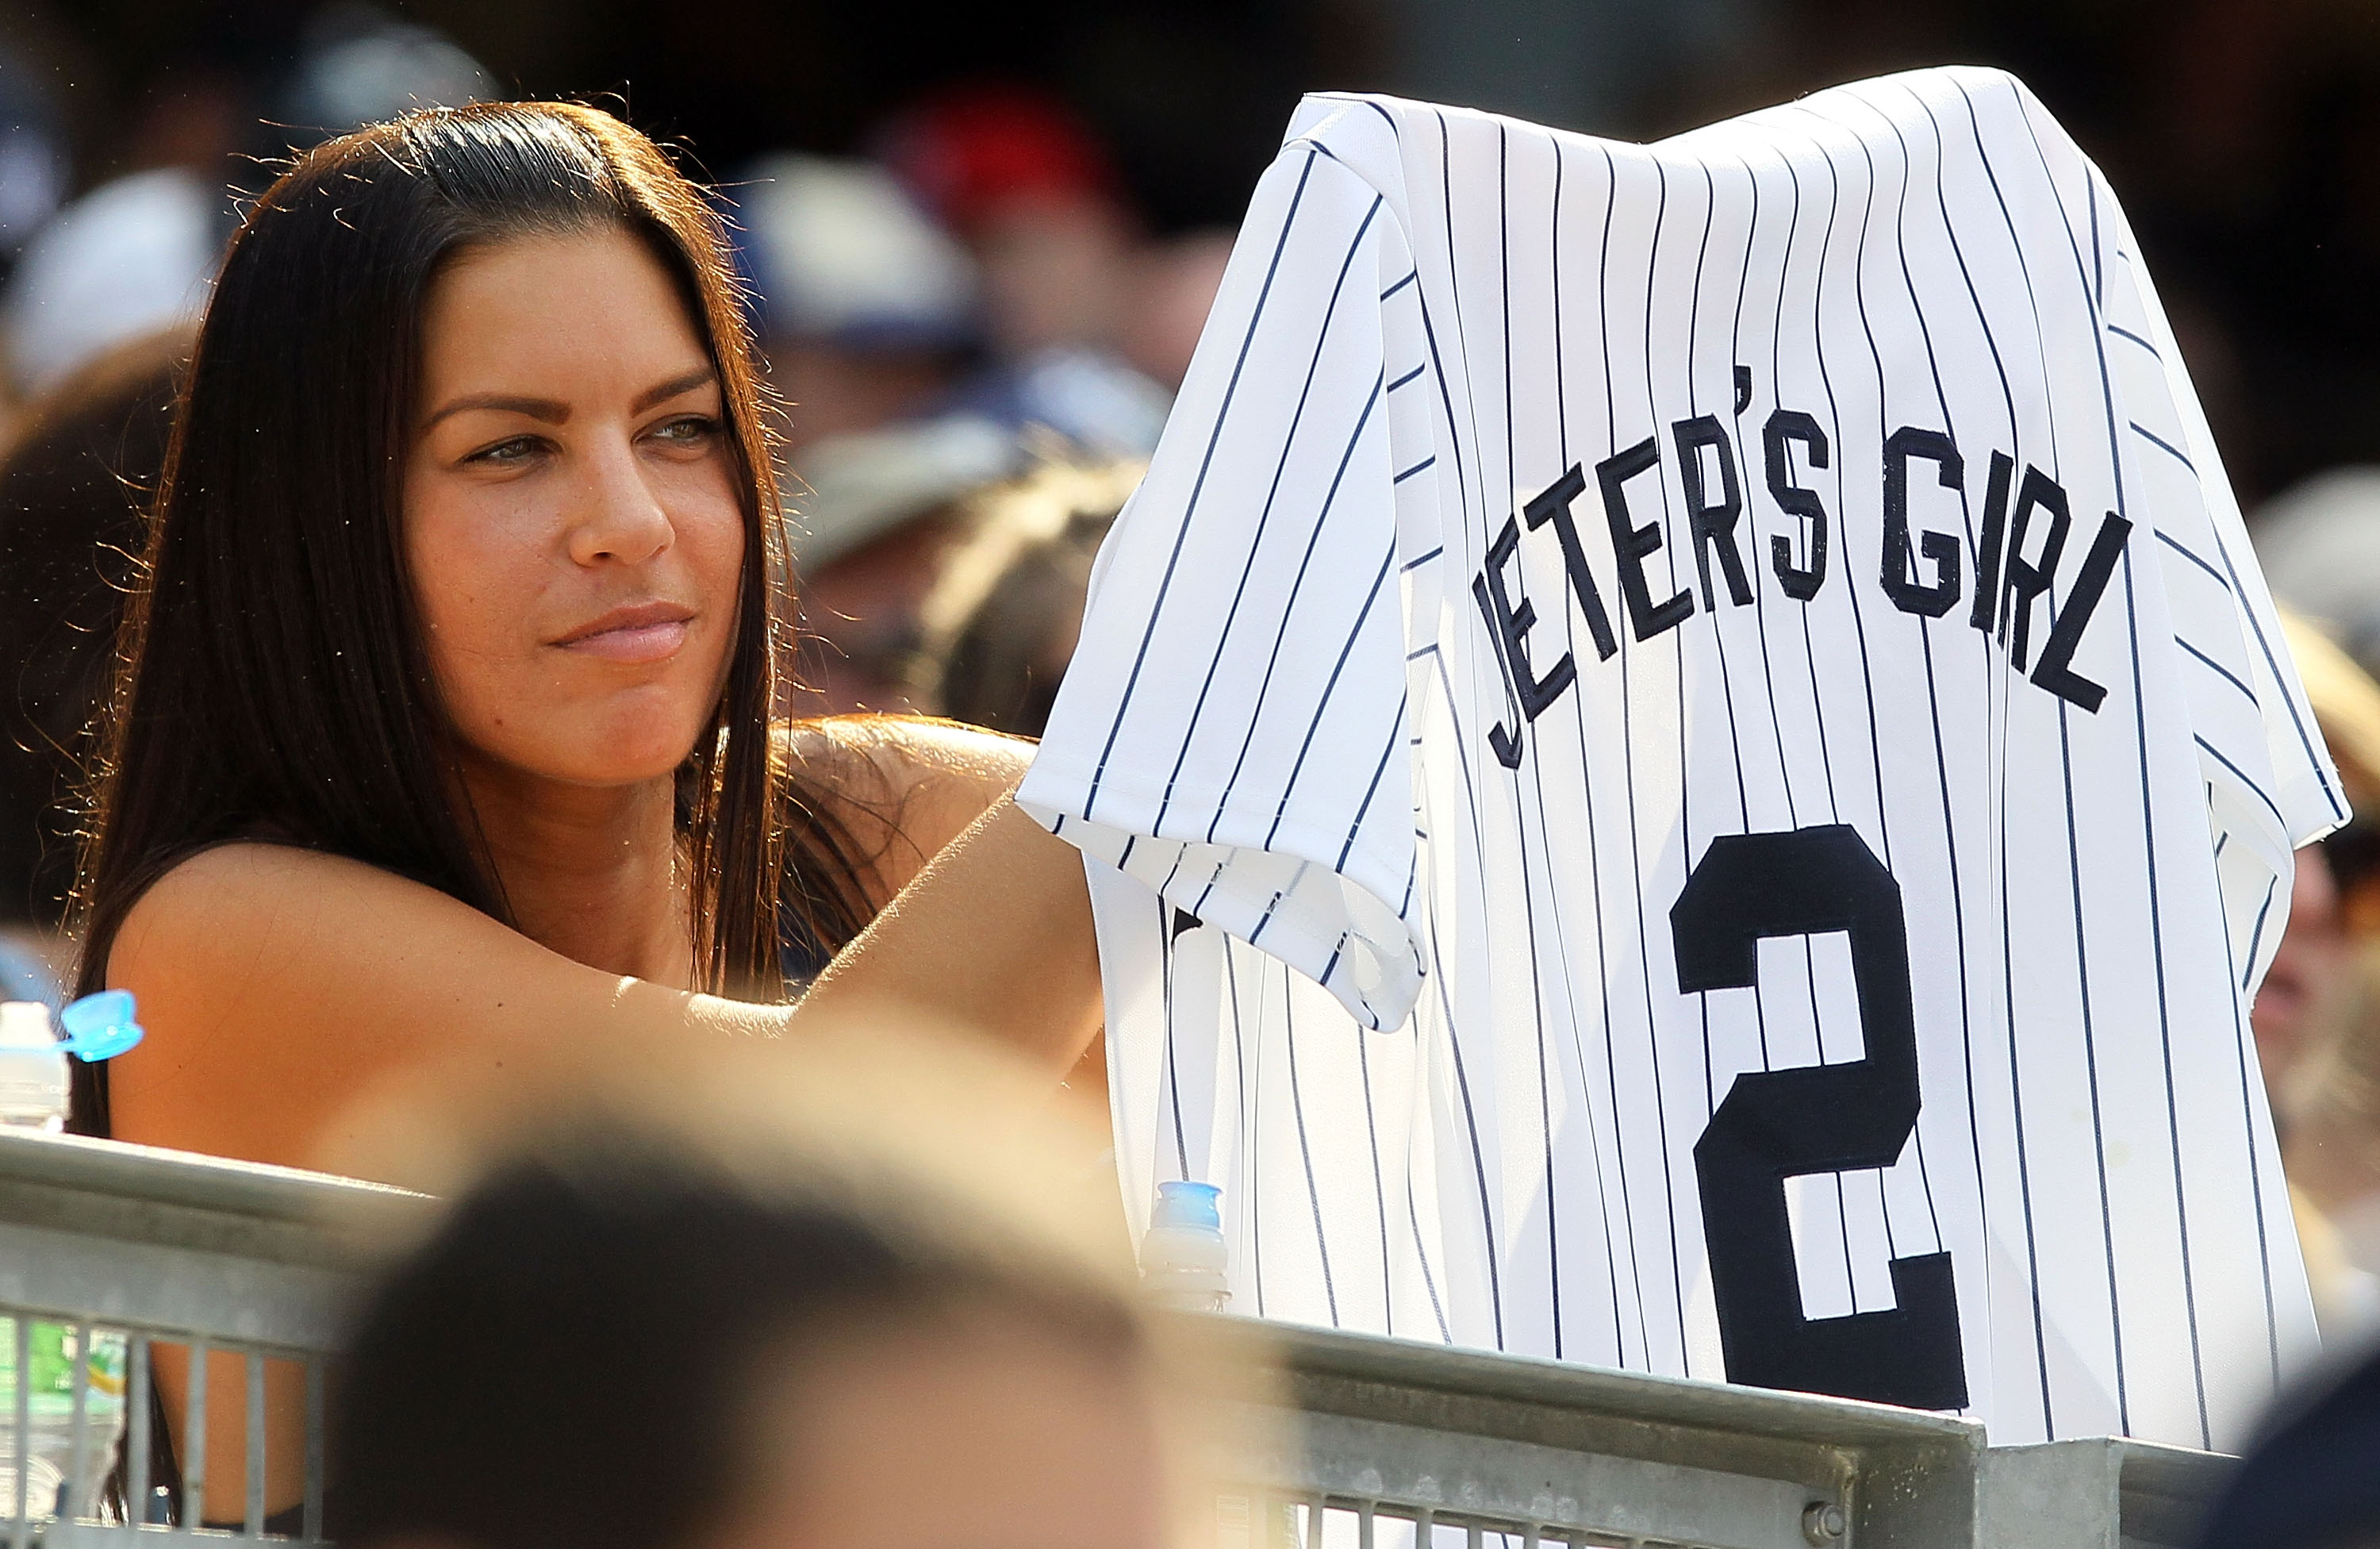 NEW YORK - JULY 18:  A fan of Derek Jeter of the New York Yankees holds up a jersey during the game against the Tampa Bay Rays on July 18, 2010 at Yankee Stadium in the Bronx borough of New York City. The Yankees defeated the Rays 9-5.  (Photo by Jim McIs